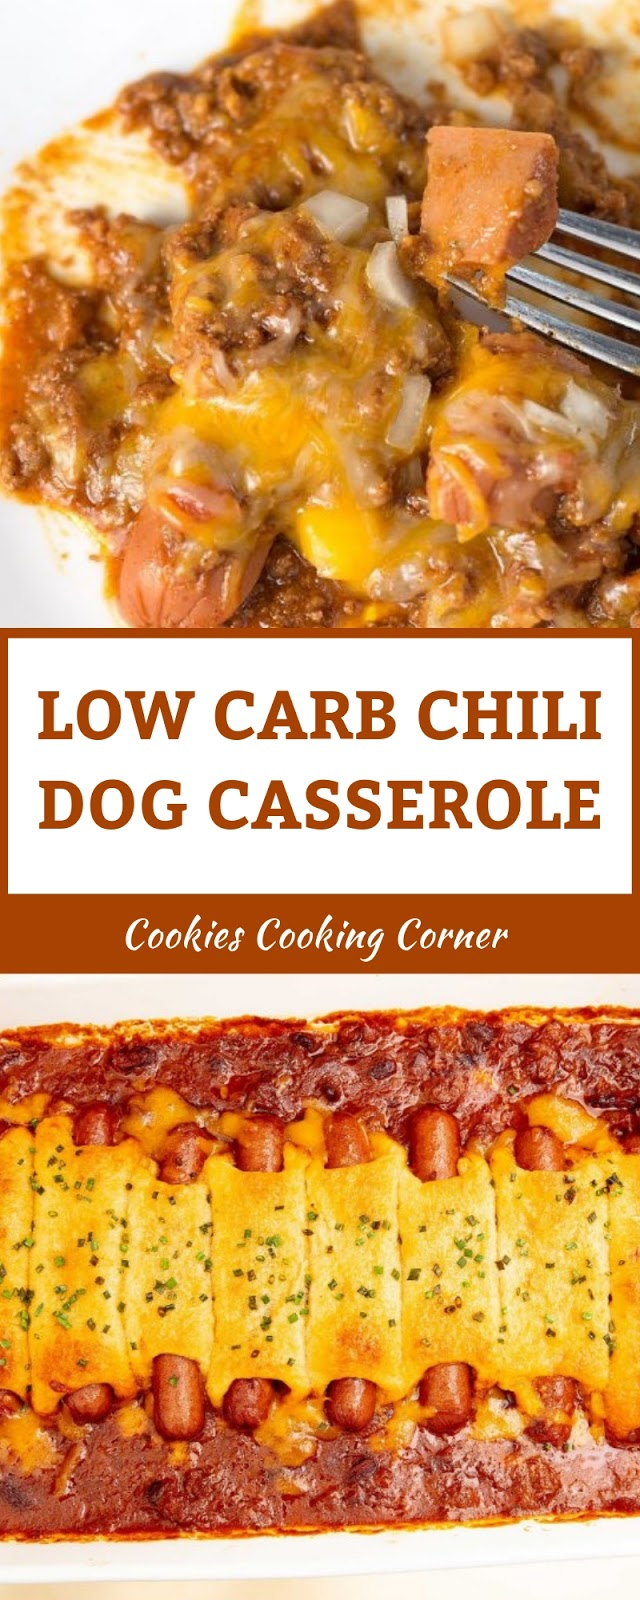 LOW CARB CHILI DOG CASSEROLE